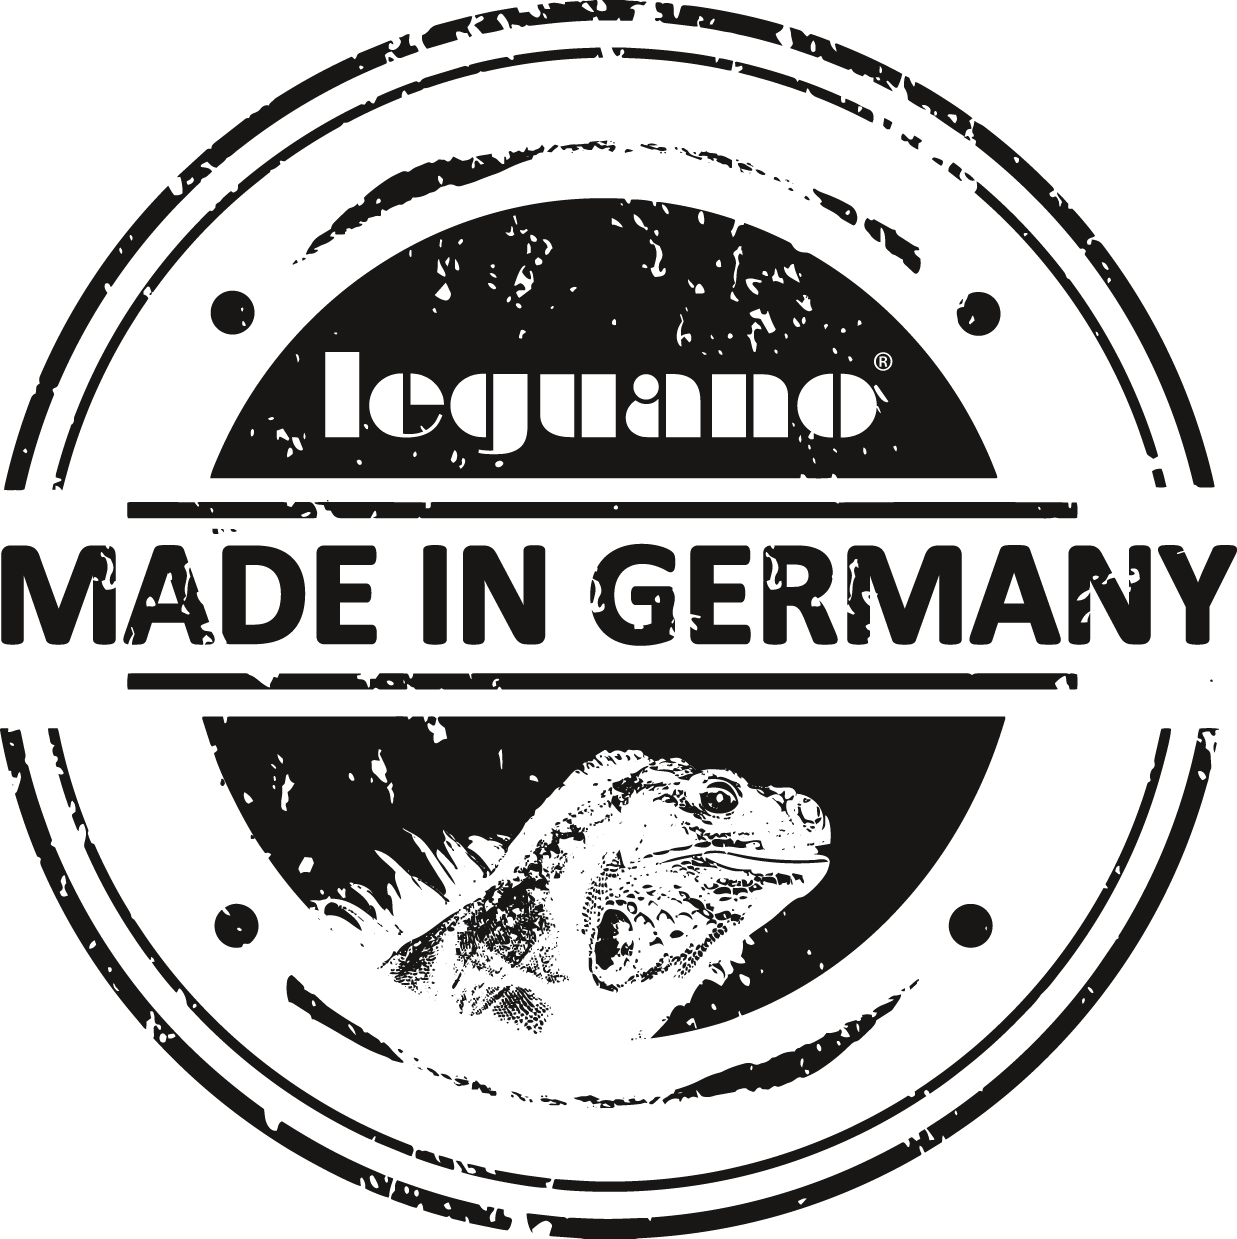 Made-in-Germany-Stempel_2016.jpg